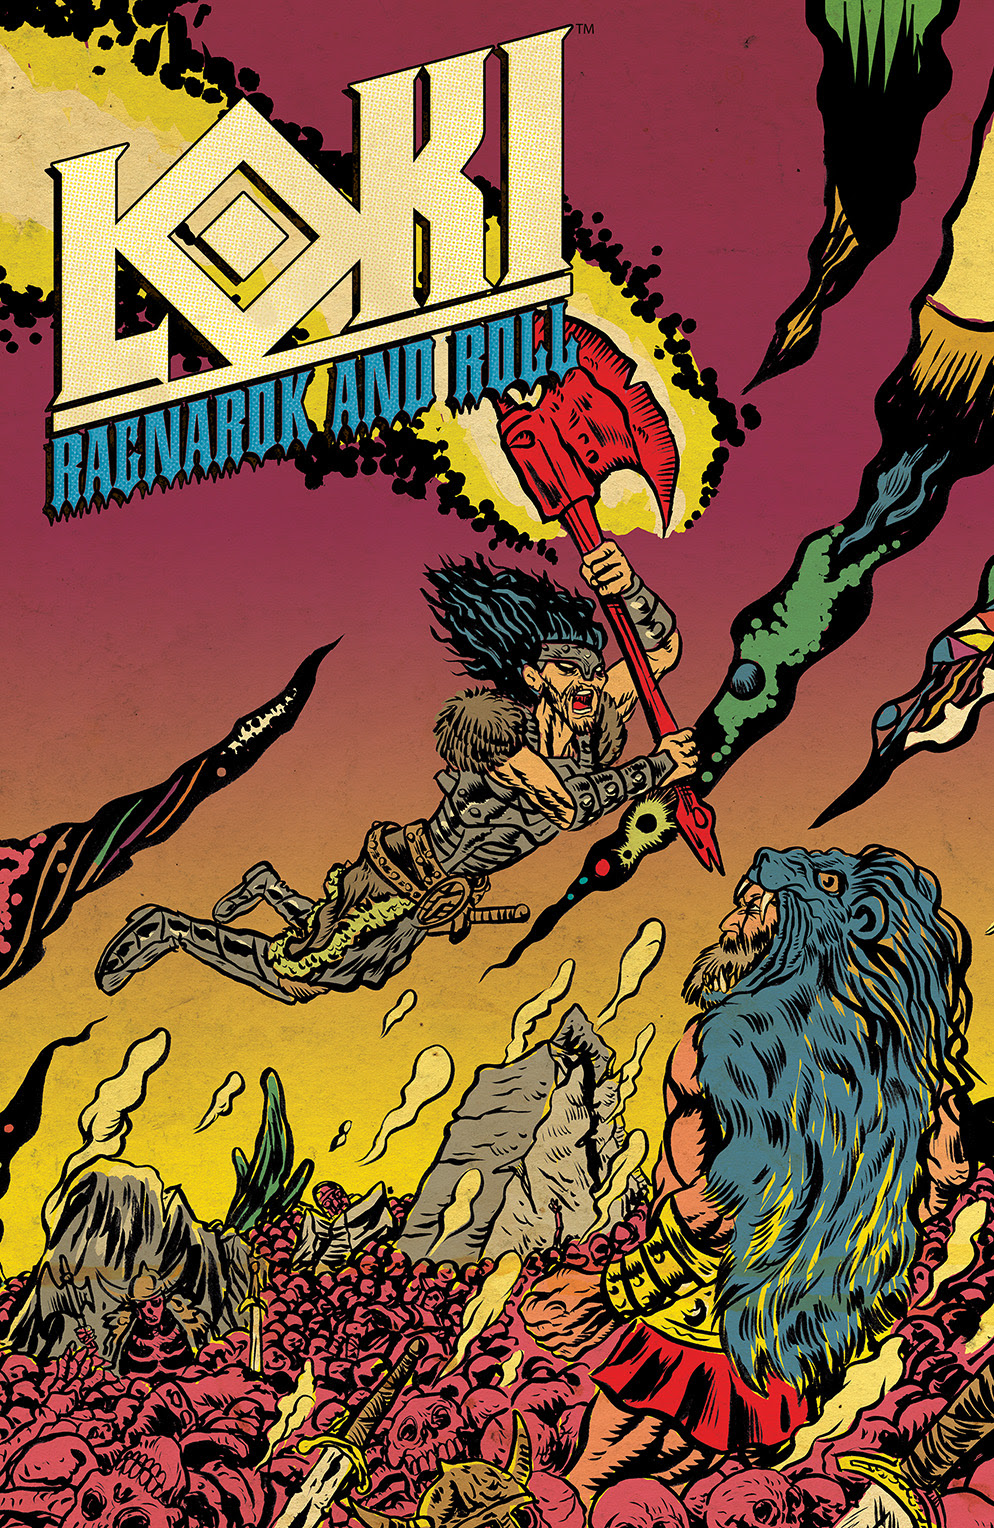 Loki: Ragnarok and Roll #3